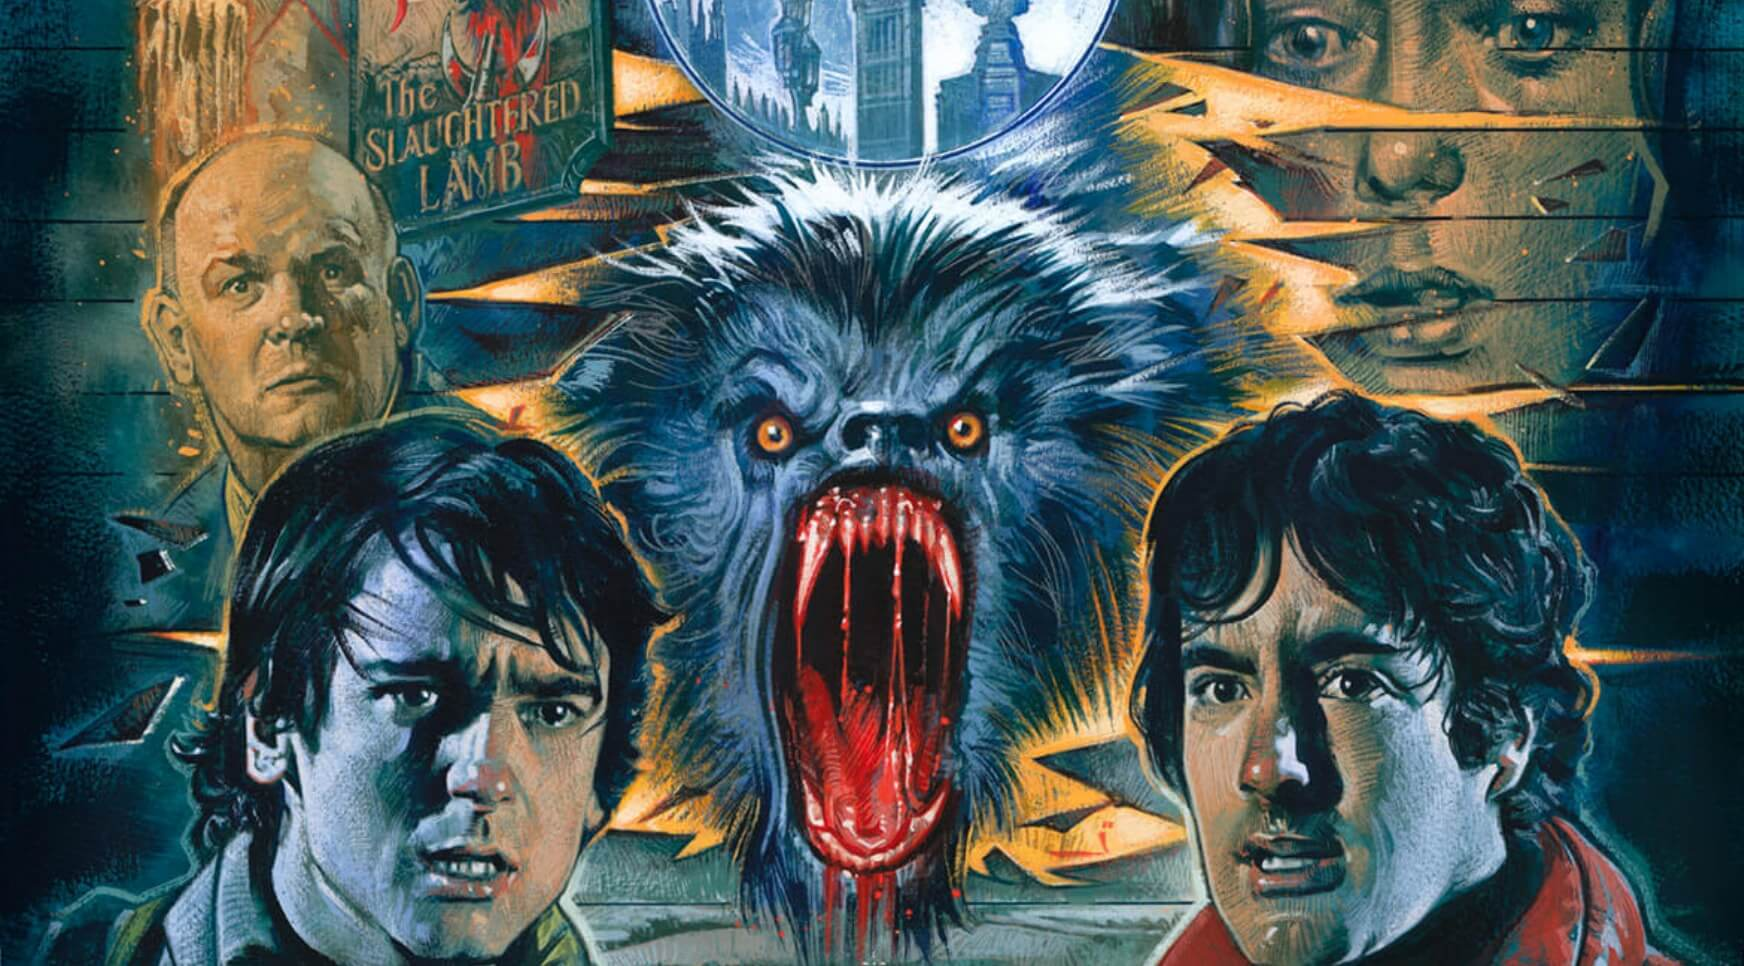 Graham Humphreys An American Werewolf in London 5 1 - AN AMERICAN WEREWOLF IN LONDON Blu-ray Review - A Classic Gets the Royal Treatment